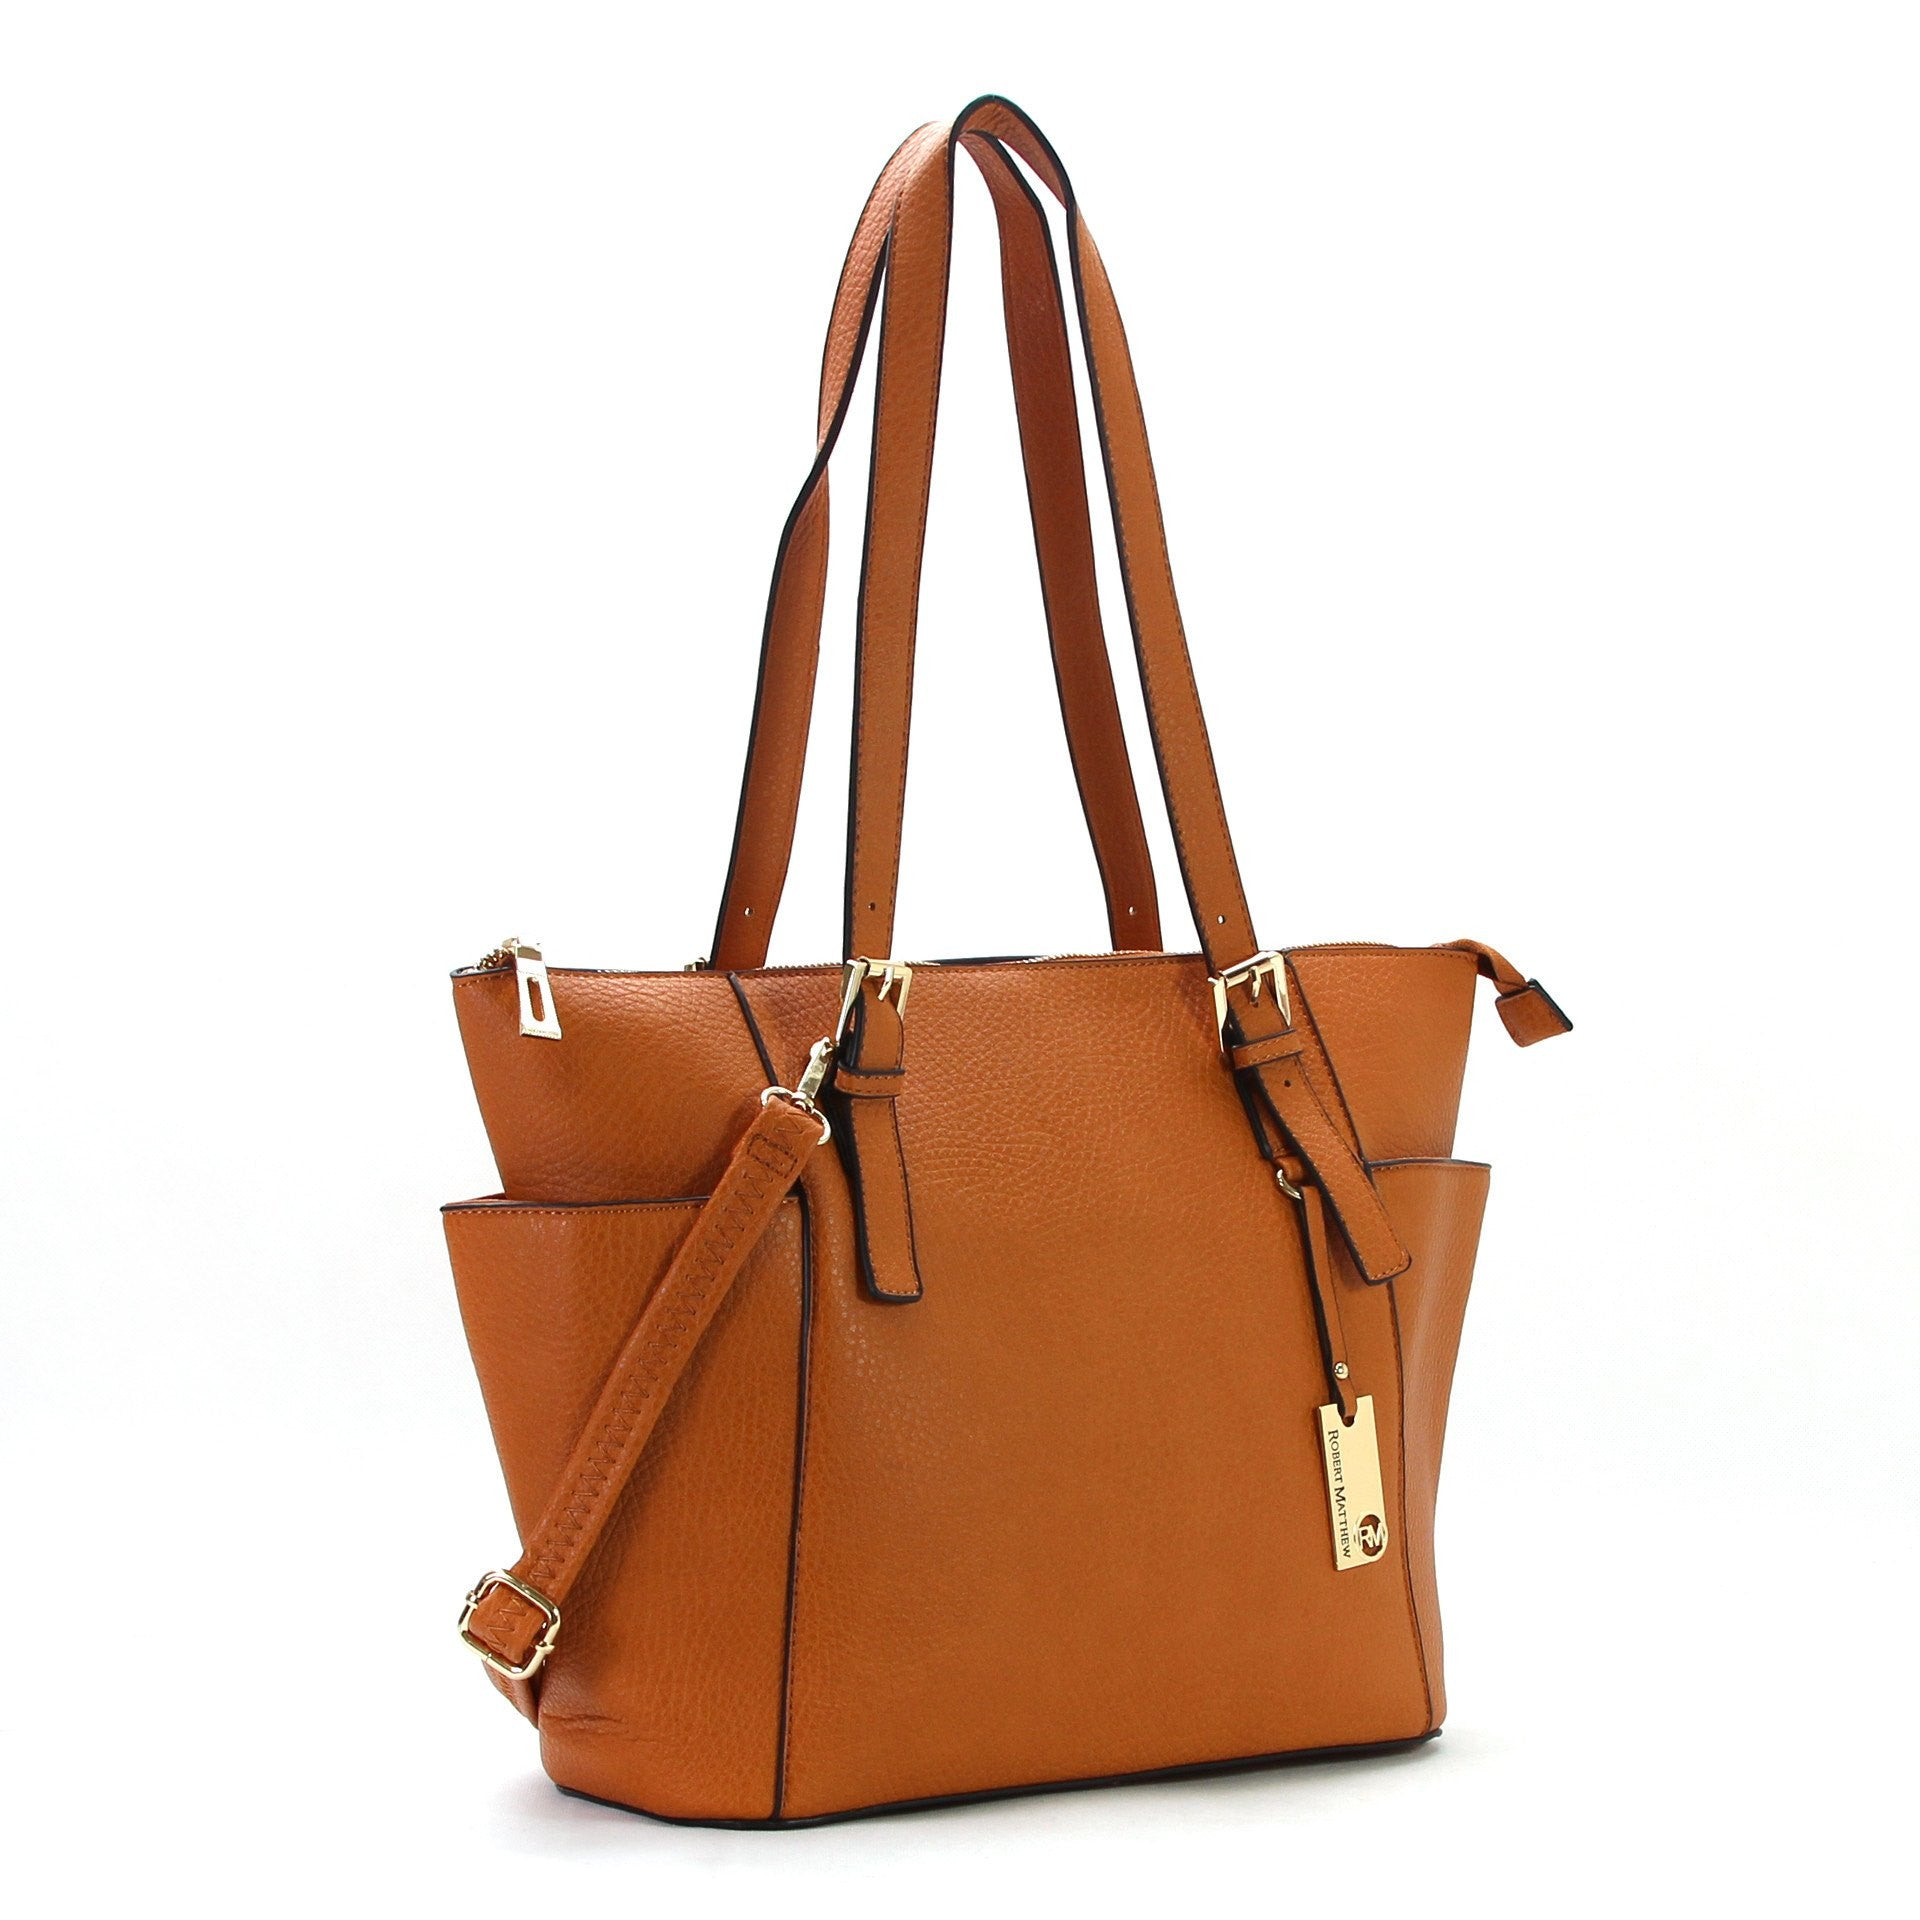 Handbag, Purse, Tote, Shoulder Bag - Robert Matthew Khloe Tote - Toasted Caramel